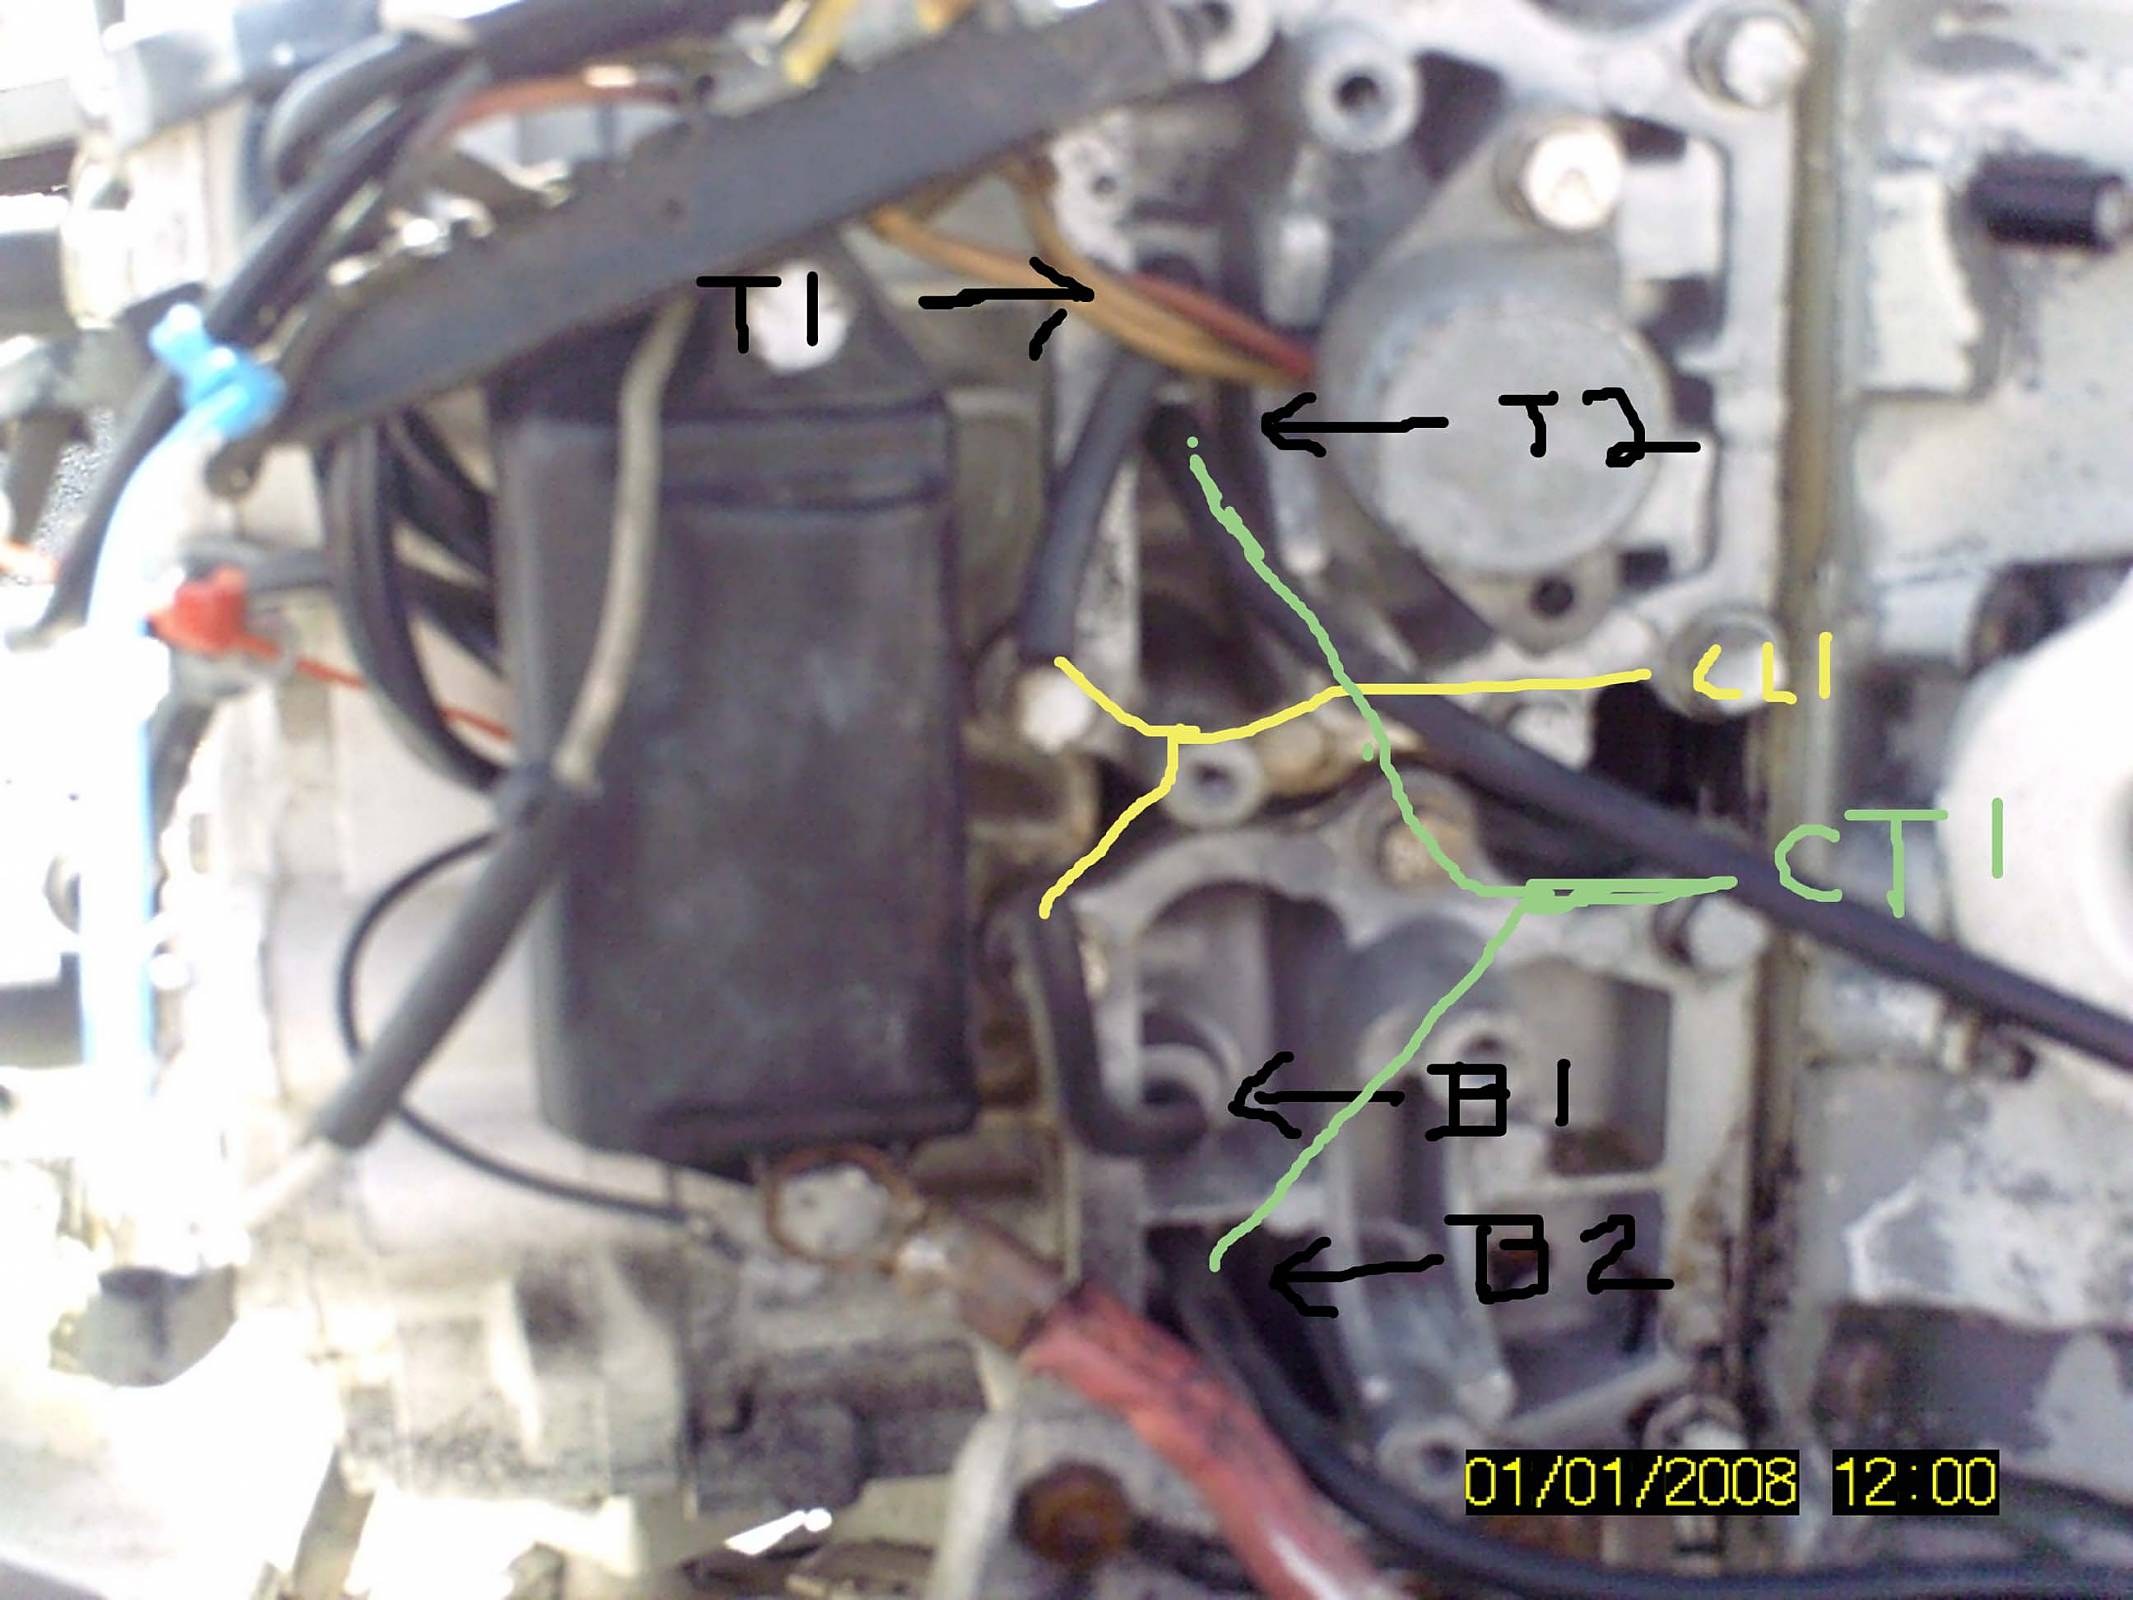 evinrude 140 wiring diagram wiring diagram for light switch u2022 rh prestonfarmmotors co  1976 evinrude 35 hp wiring diagram